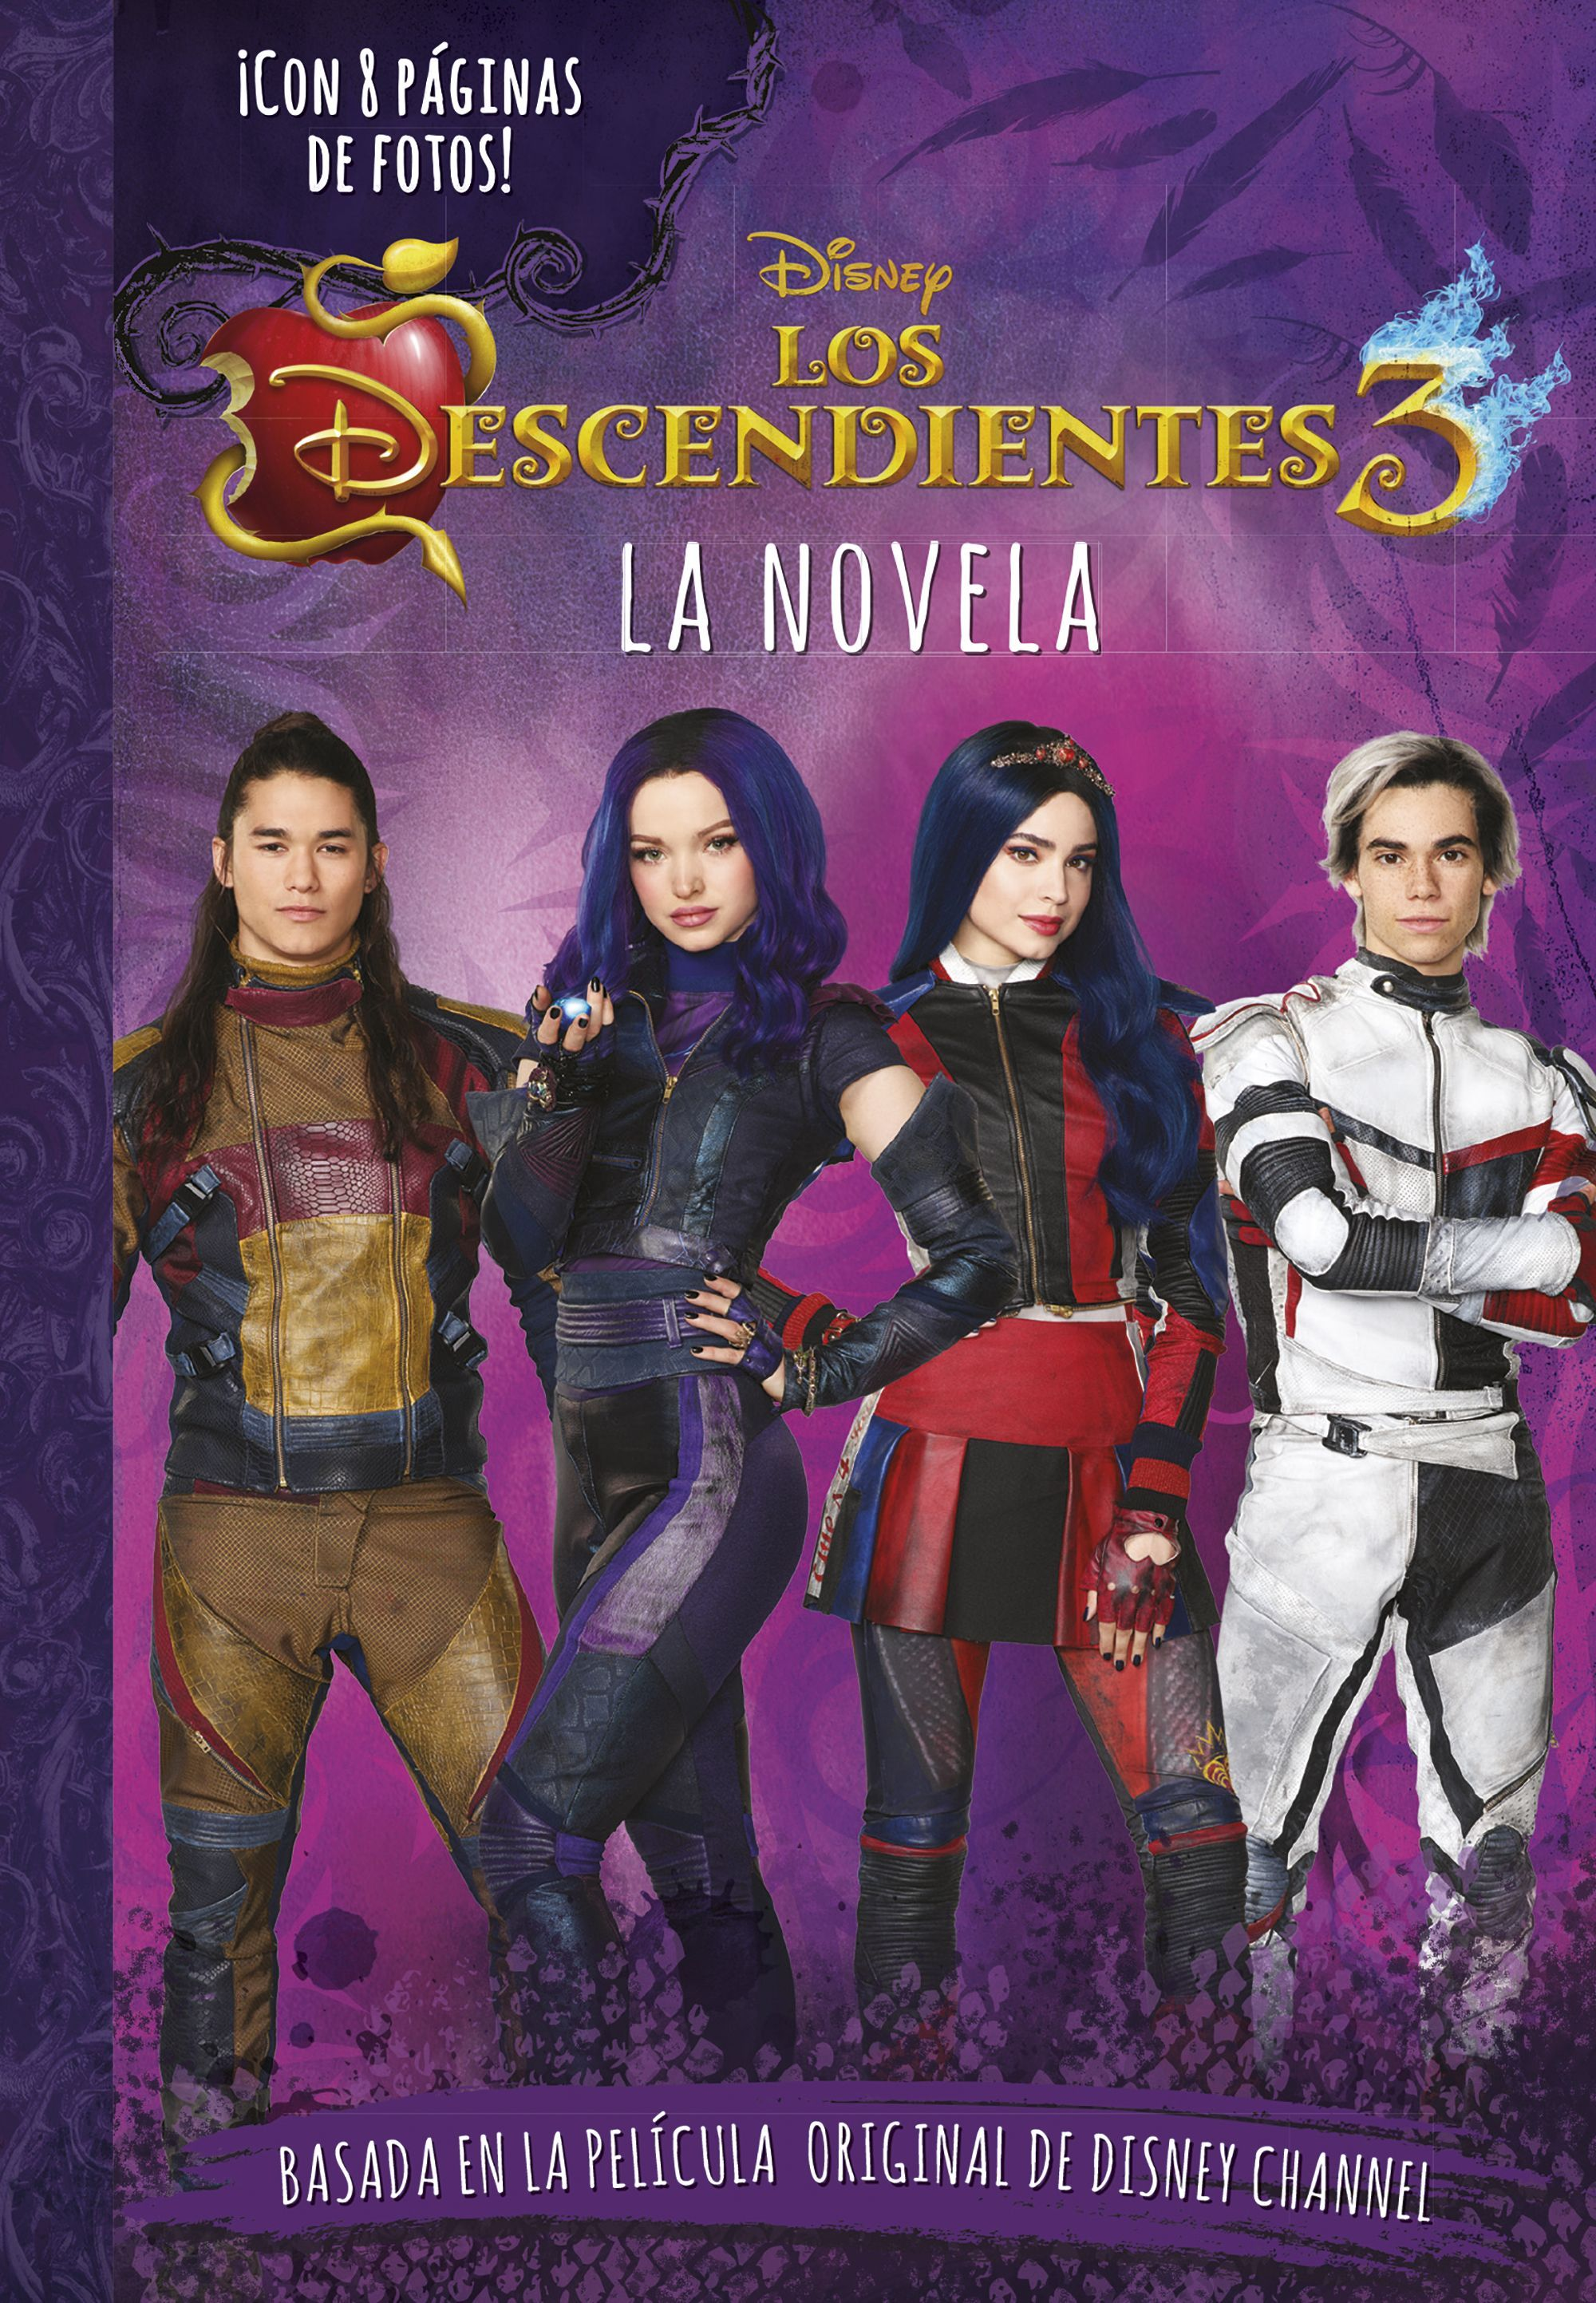 DESCENDIENTES 3. LA NOVELA